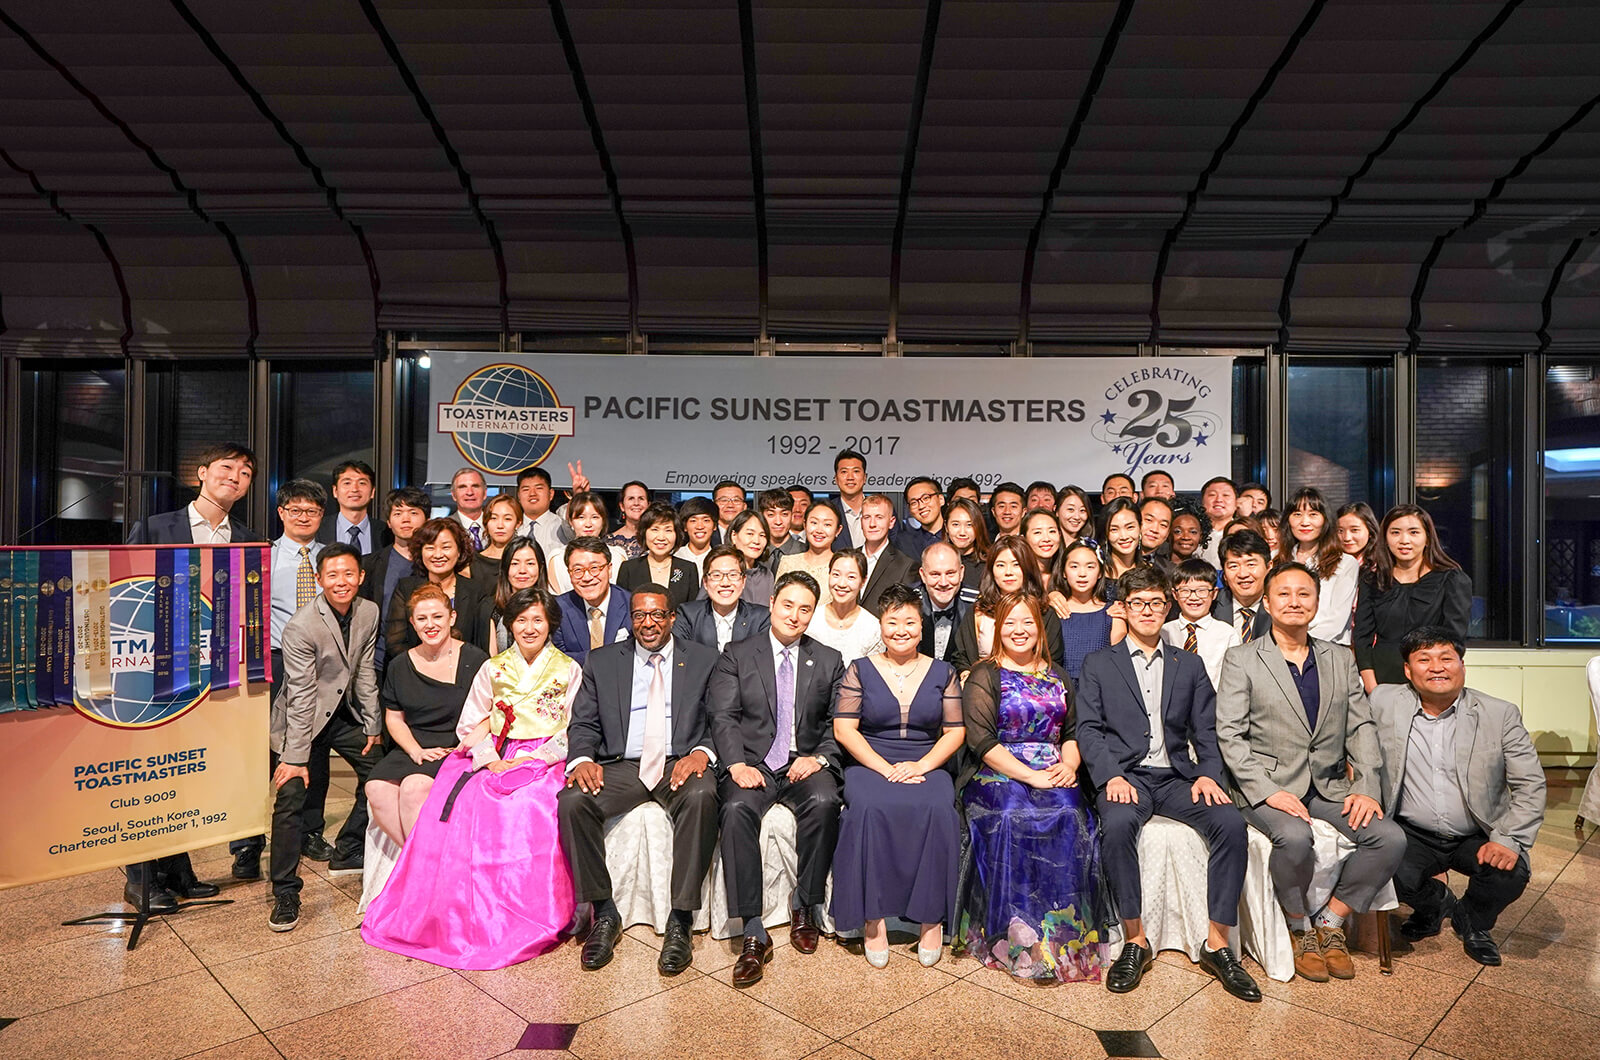 Pacific Sunset Toastmasters of Seoul, South Korea, celebrates its 25th anniversary.